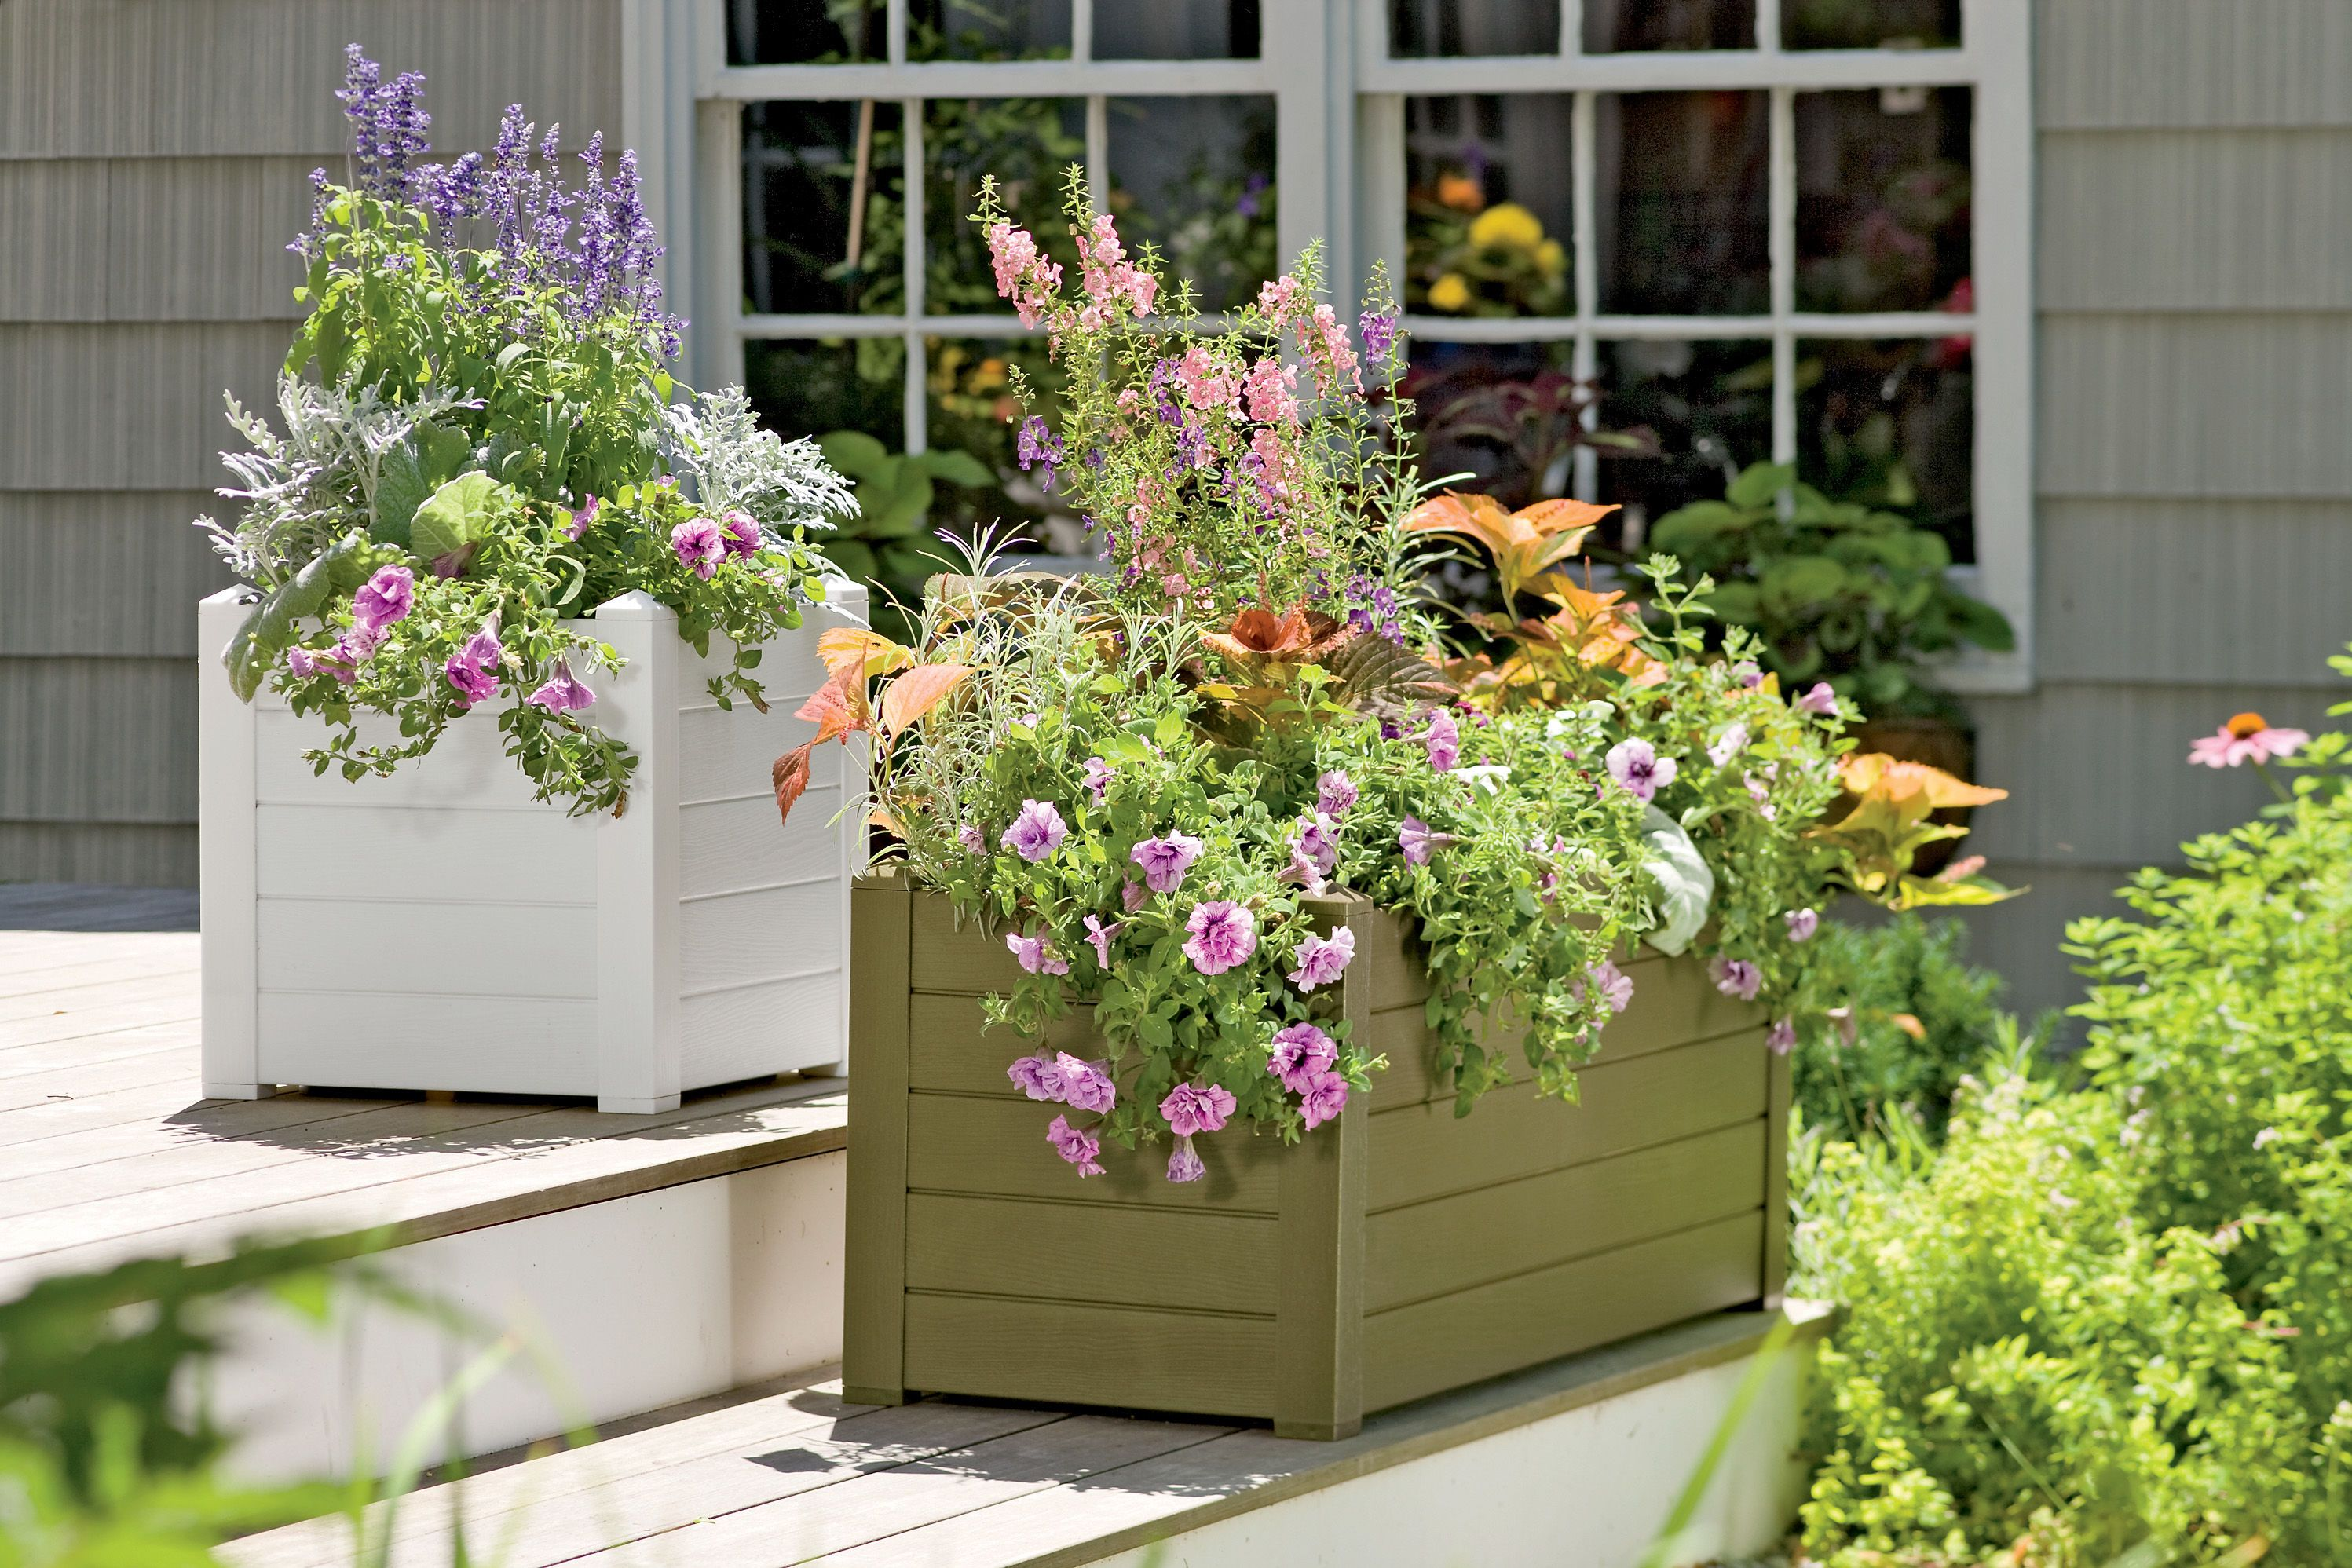 and how watering decoration lechuza large planters use santino planter containers to bangalore canada the usa pots deck self reviews hyderabad